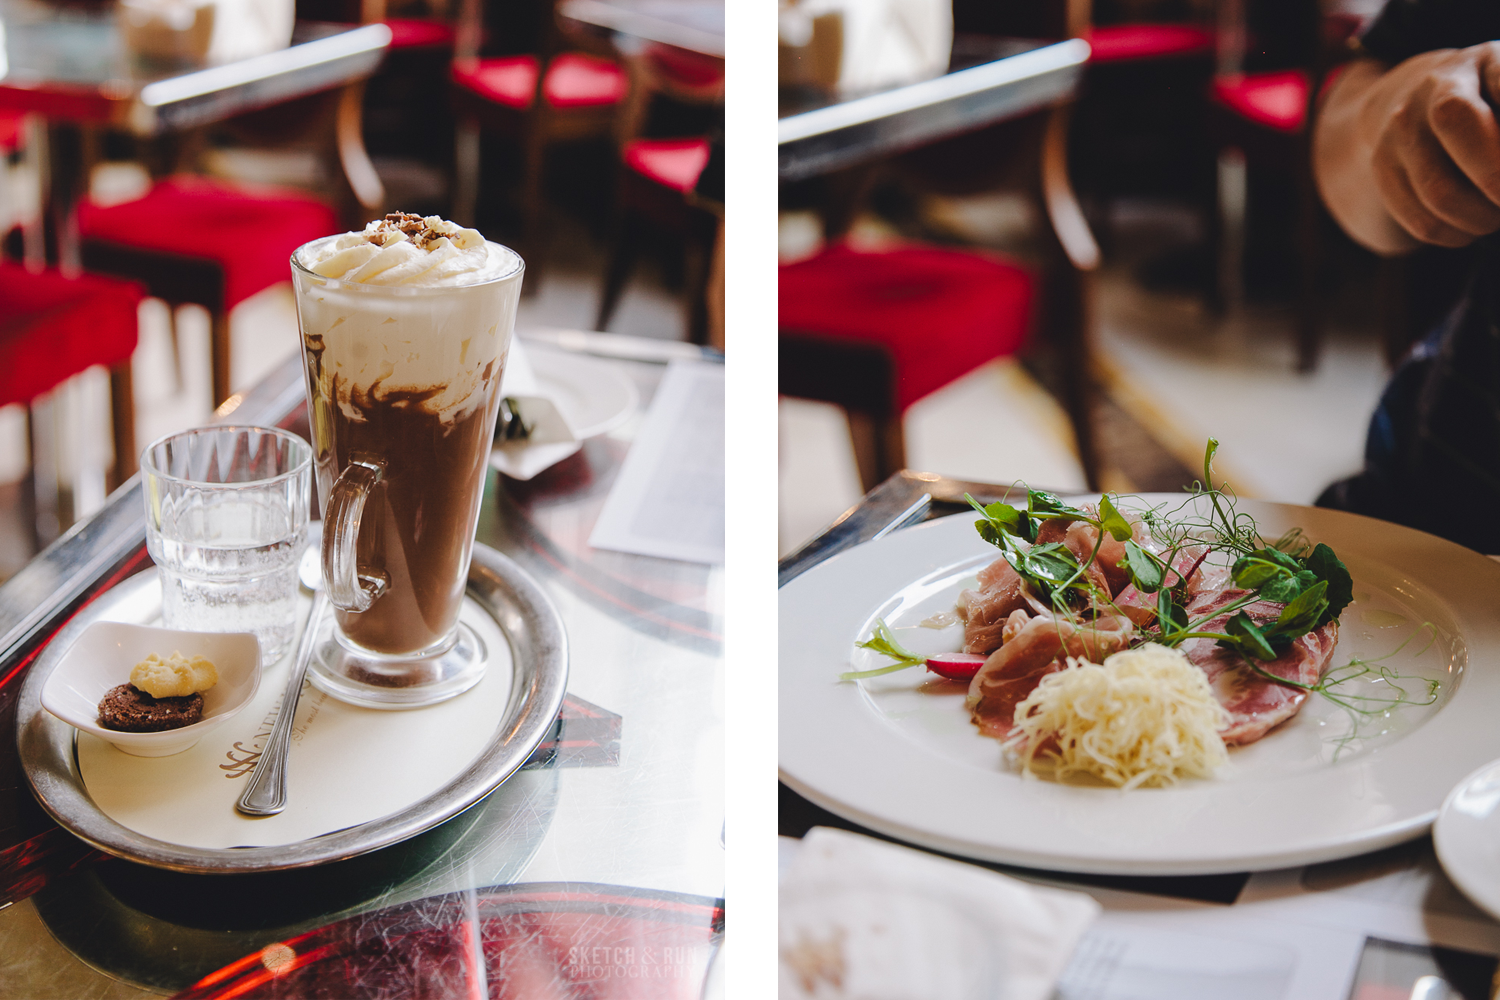 New York Cafe, coffee, food, lunch, Budapest, Hungary